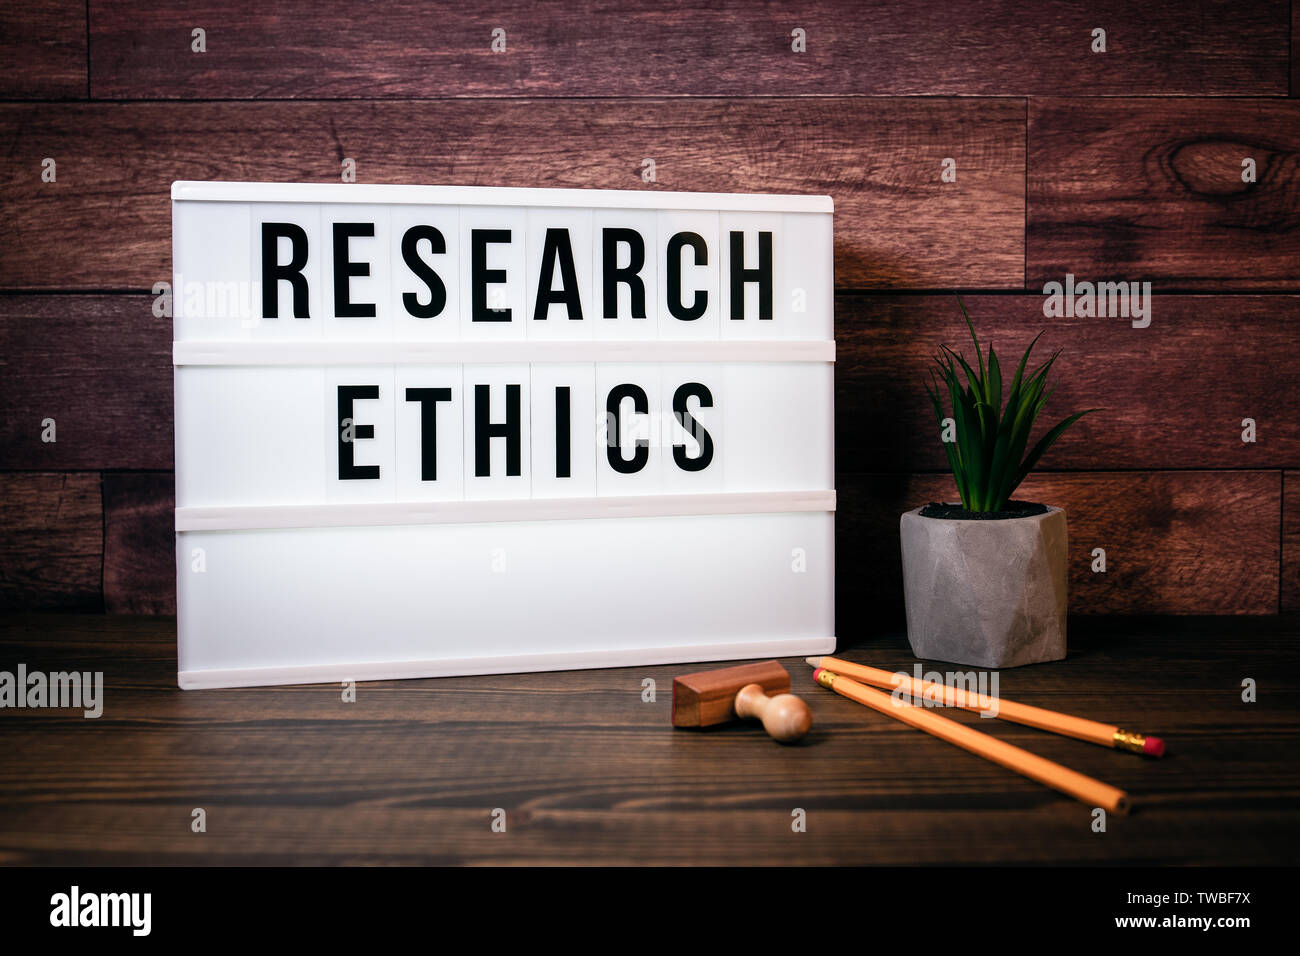 Research Ethics. Text in lightbox - Stock Image